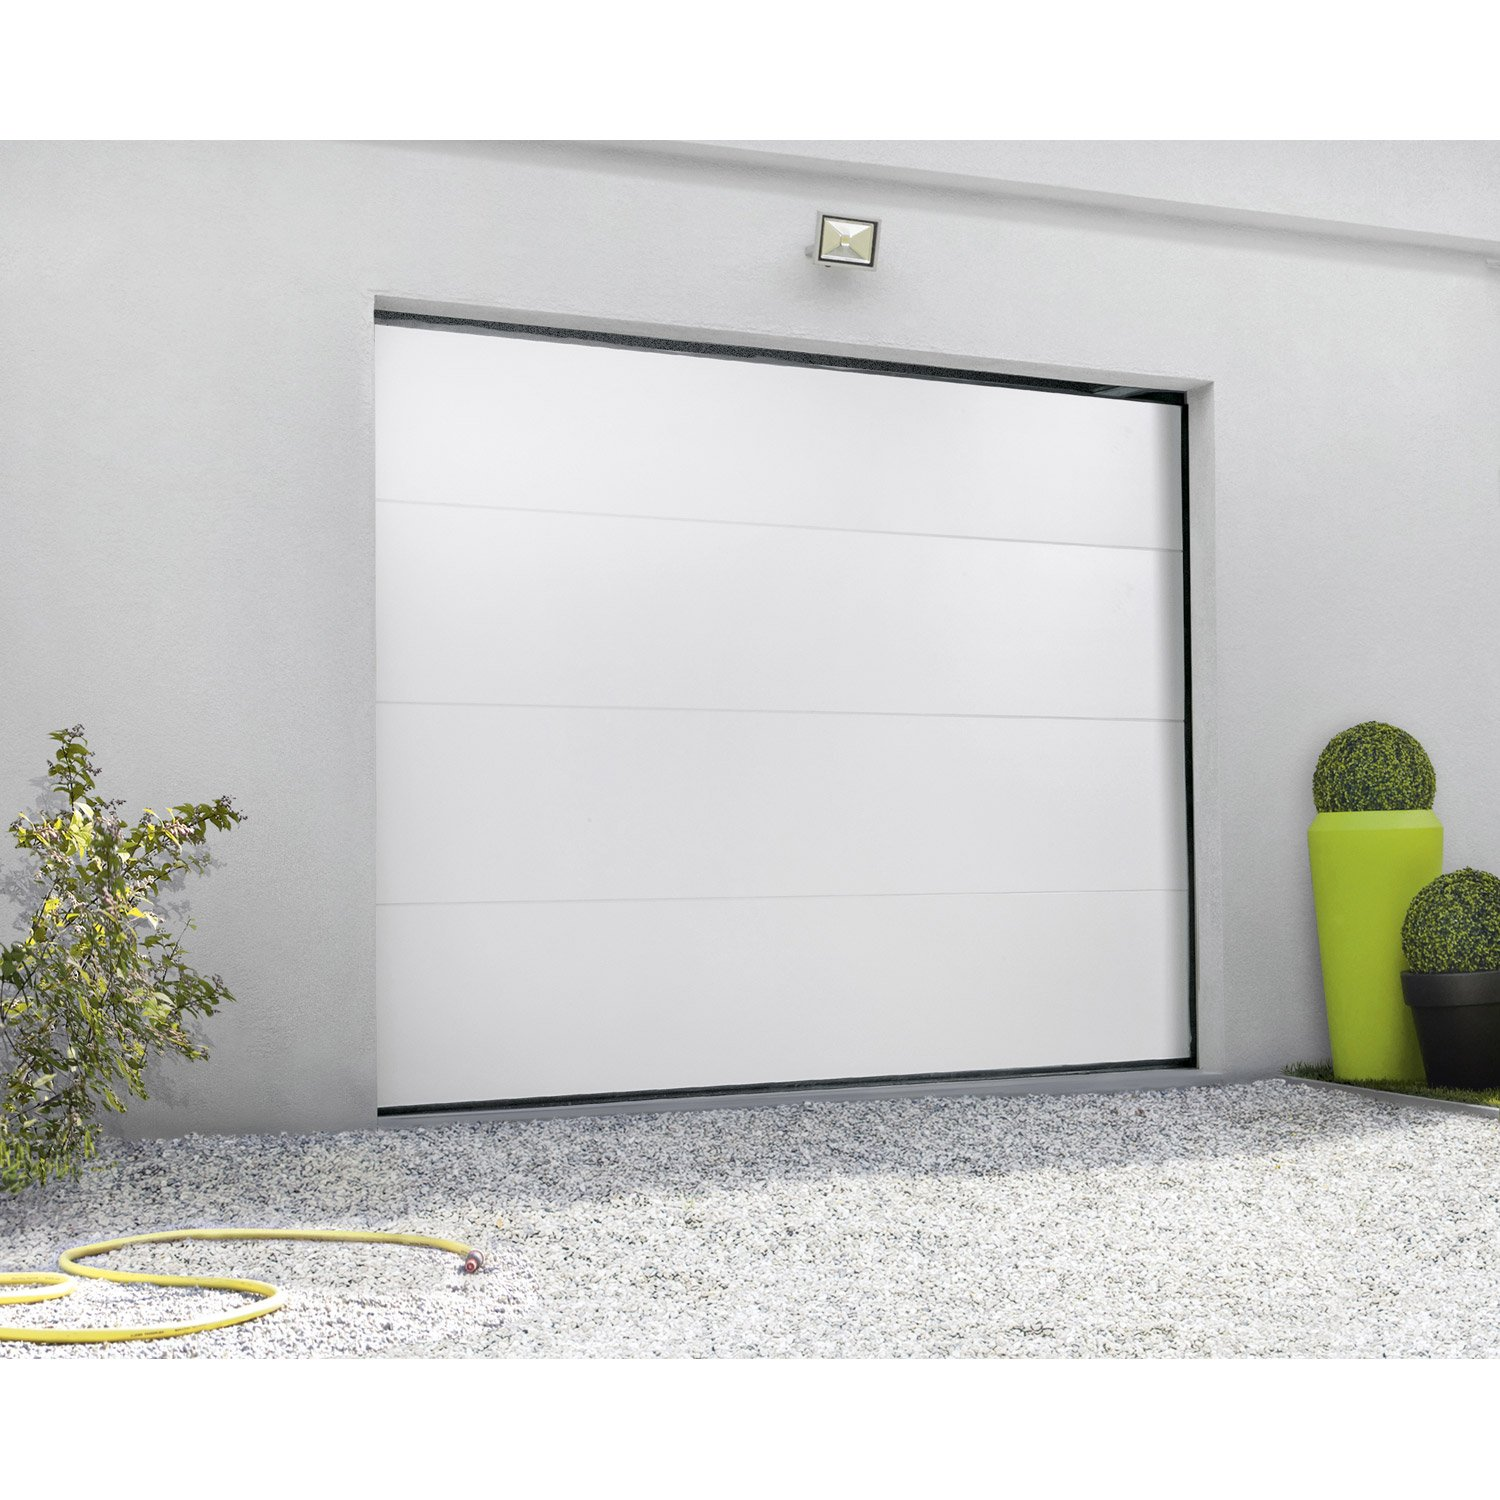 porte de garage wayne dalton leroy merlin isolation id es On isolation porte de garage leroy merlin